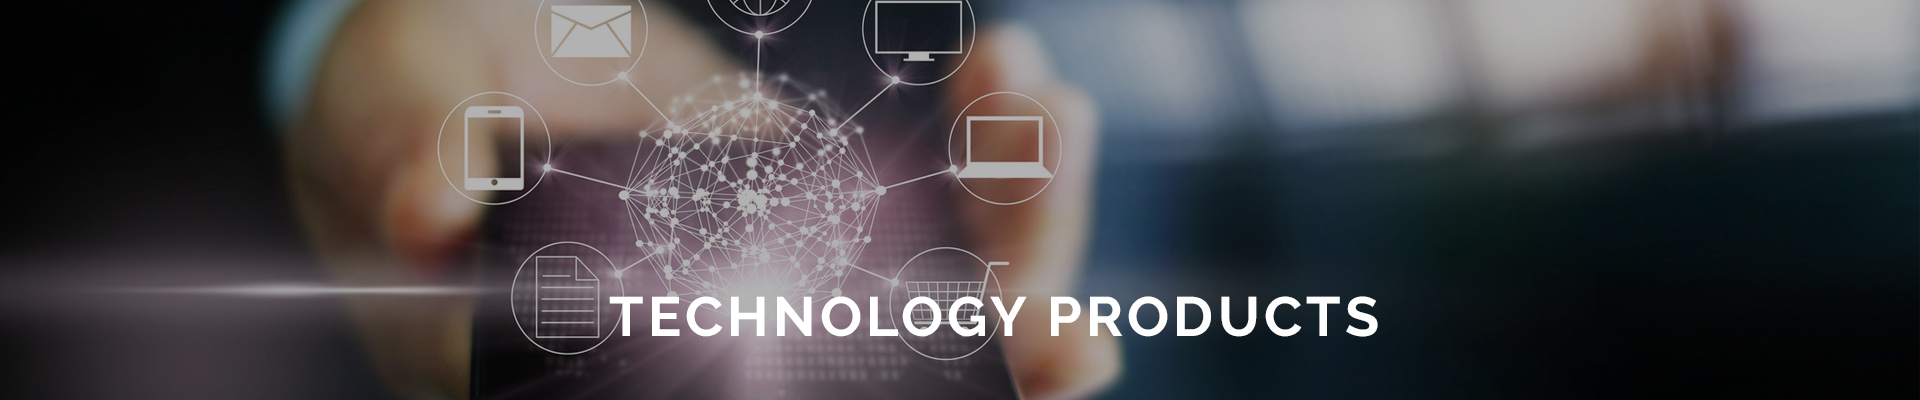 technology_products_header